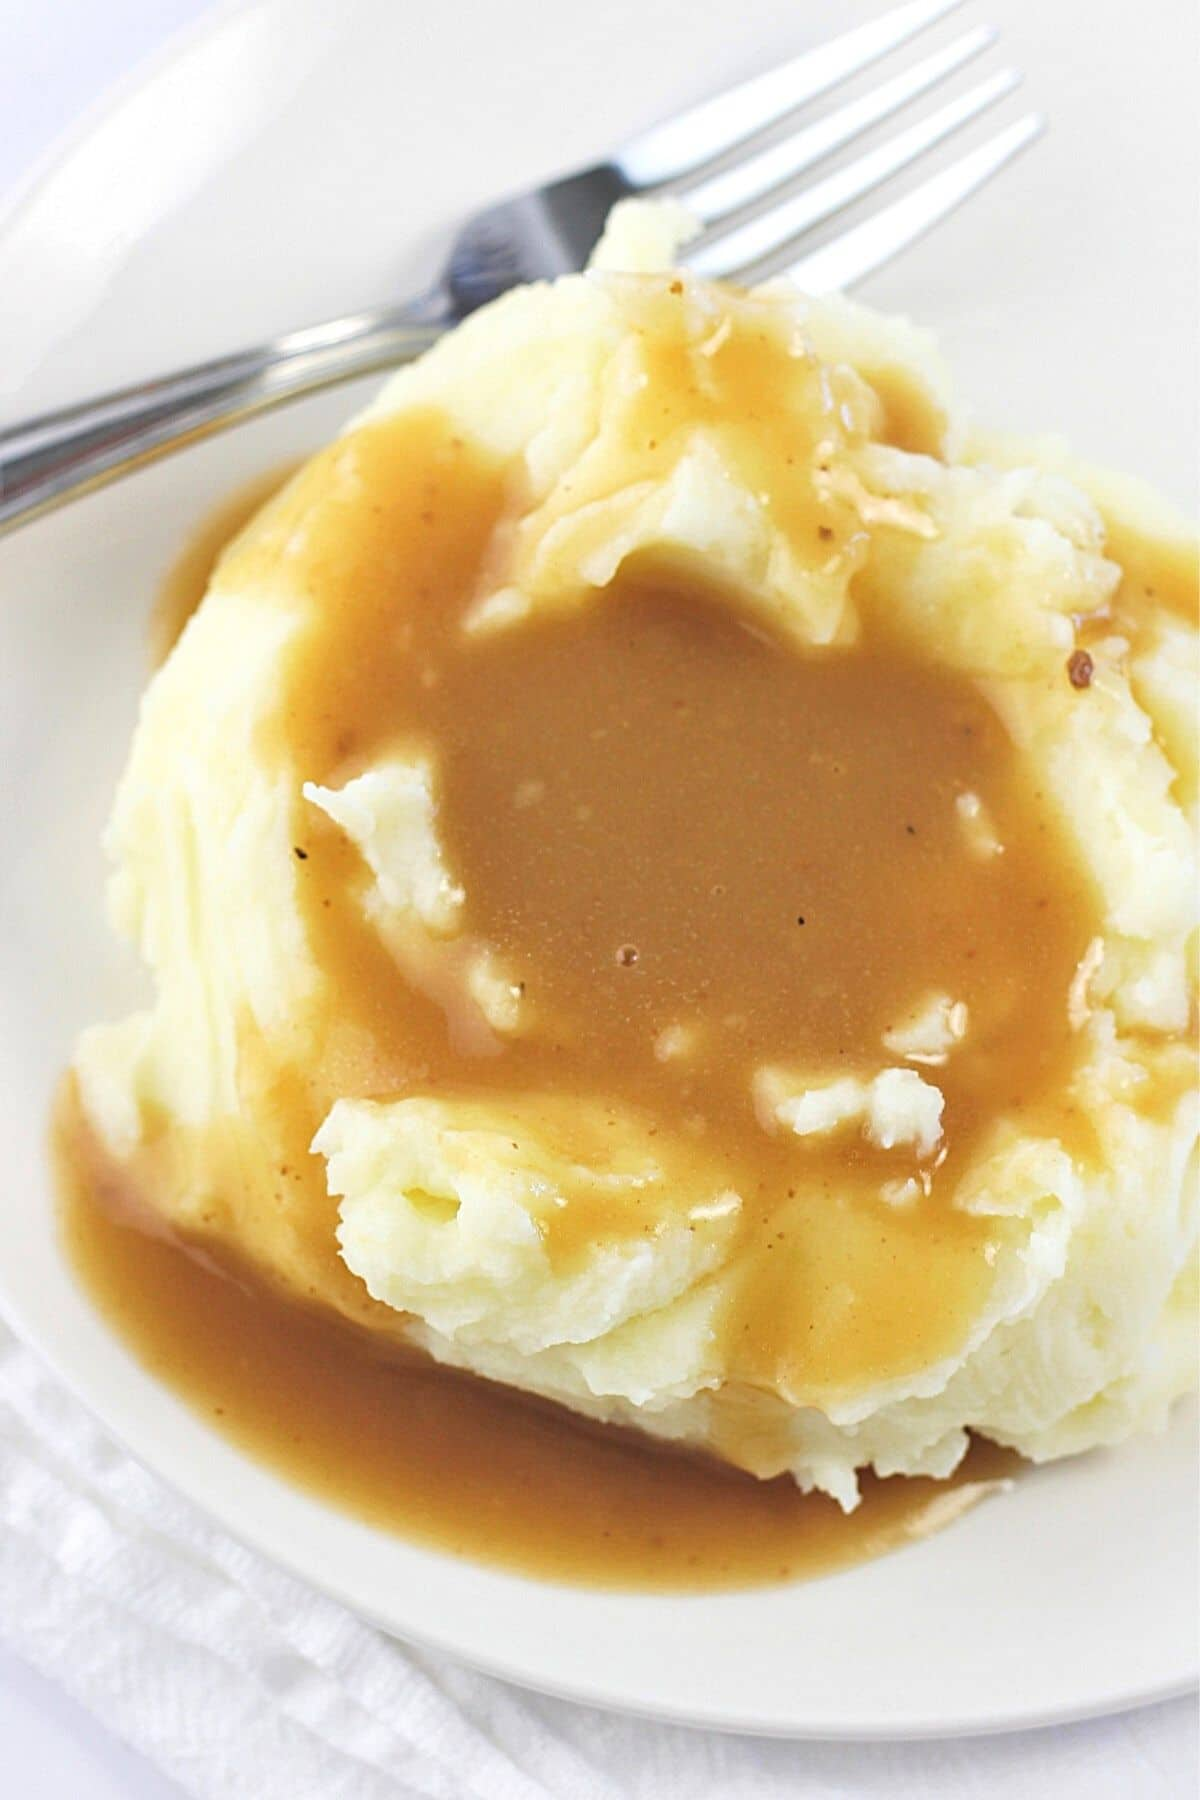 mashed potatoes and gravy on a white plate with a fork on the side